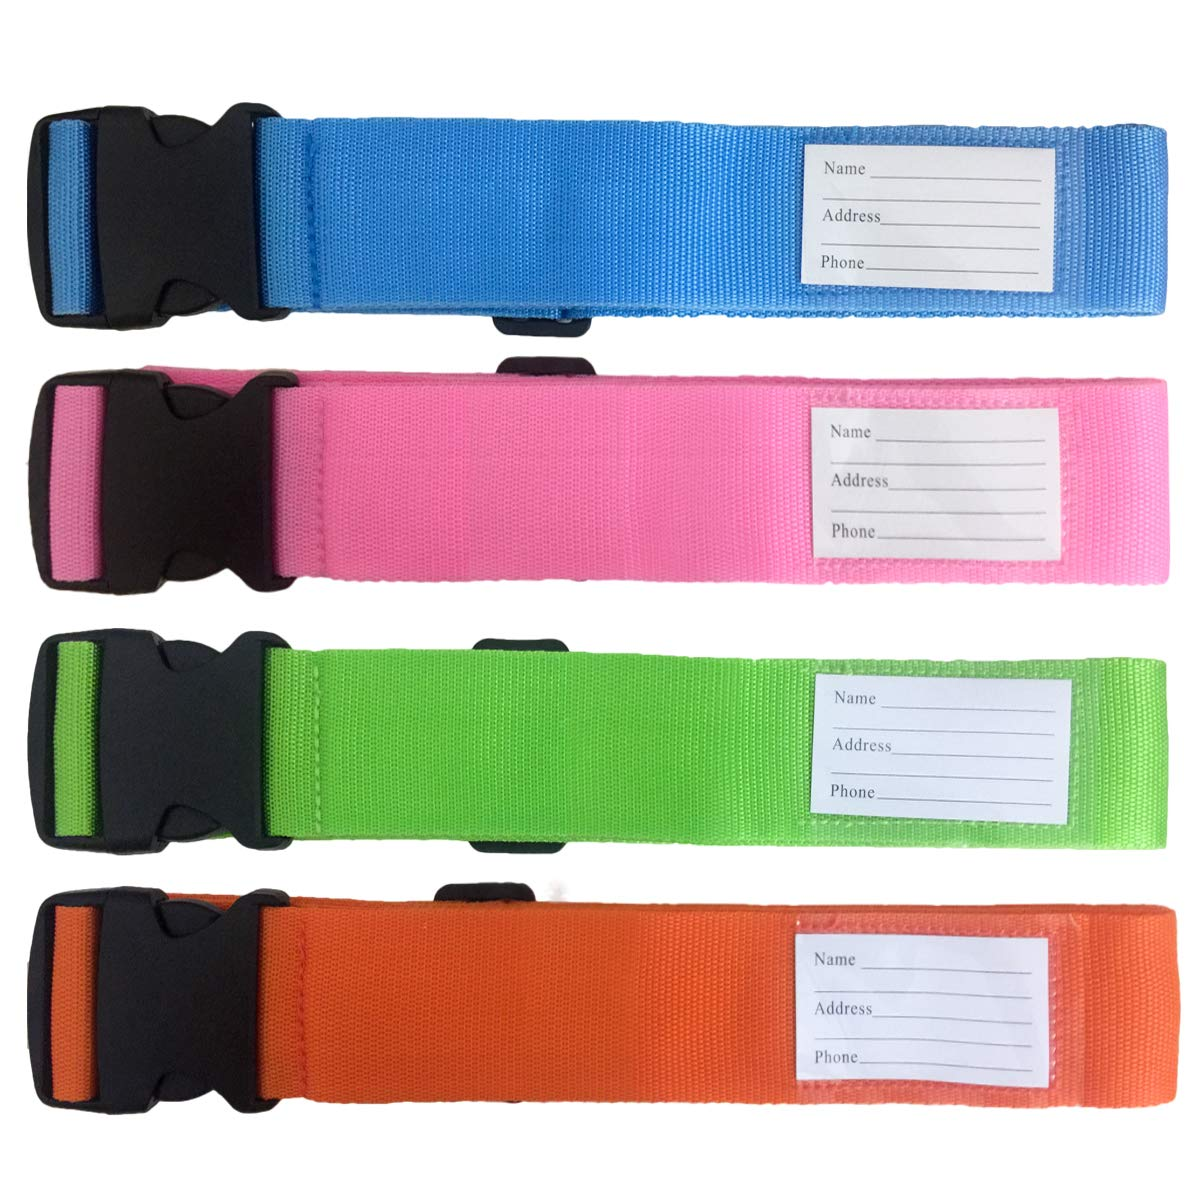 4-Pack Luggage Straps Suitcase Belt and Tag Travel Bag Accessories 4 Colors